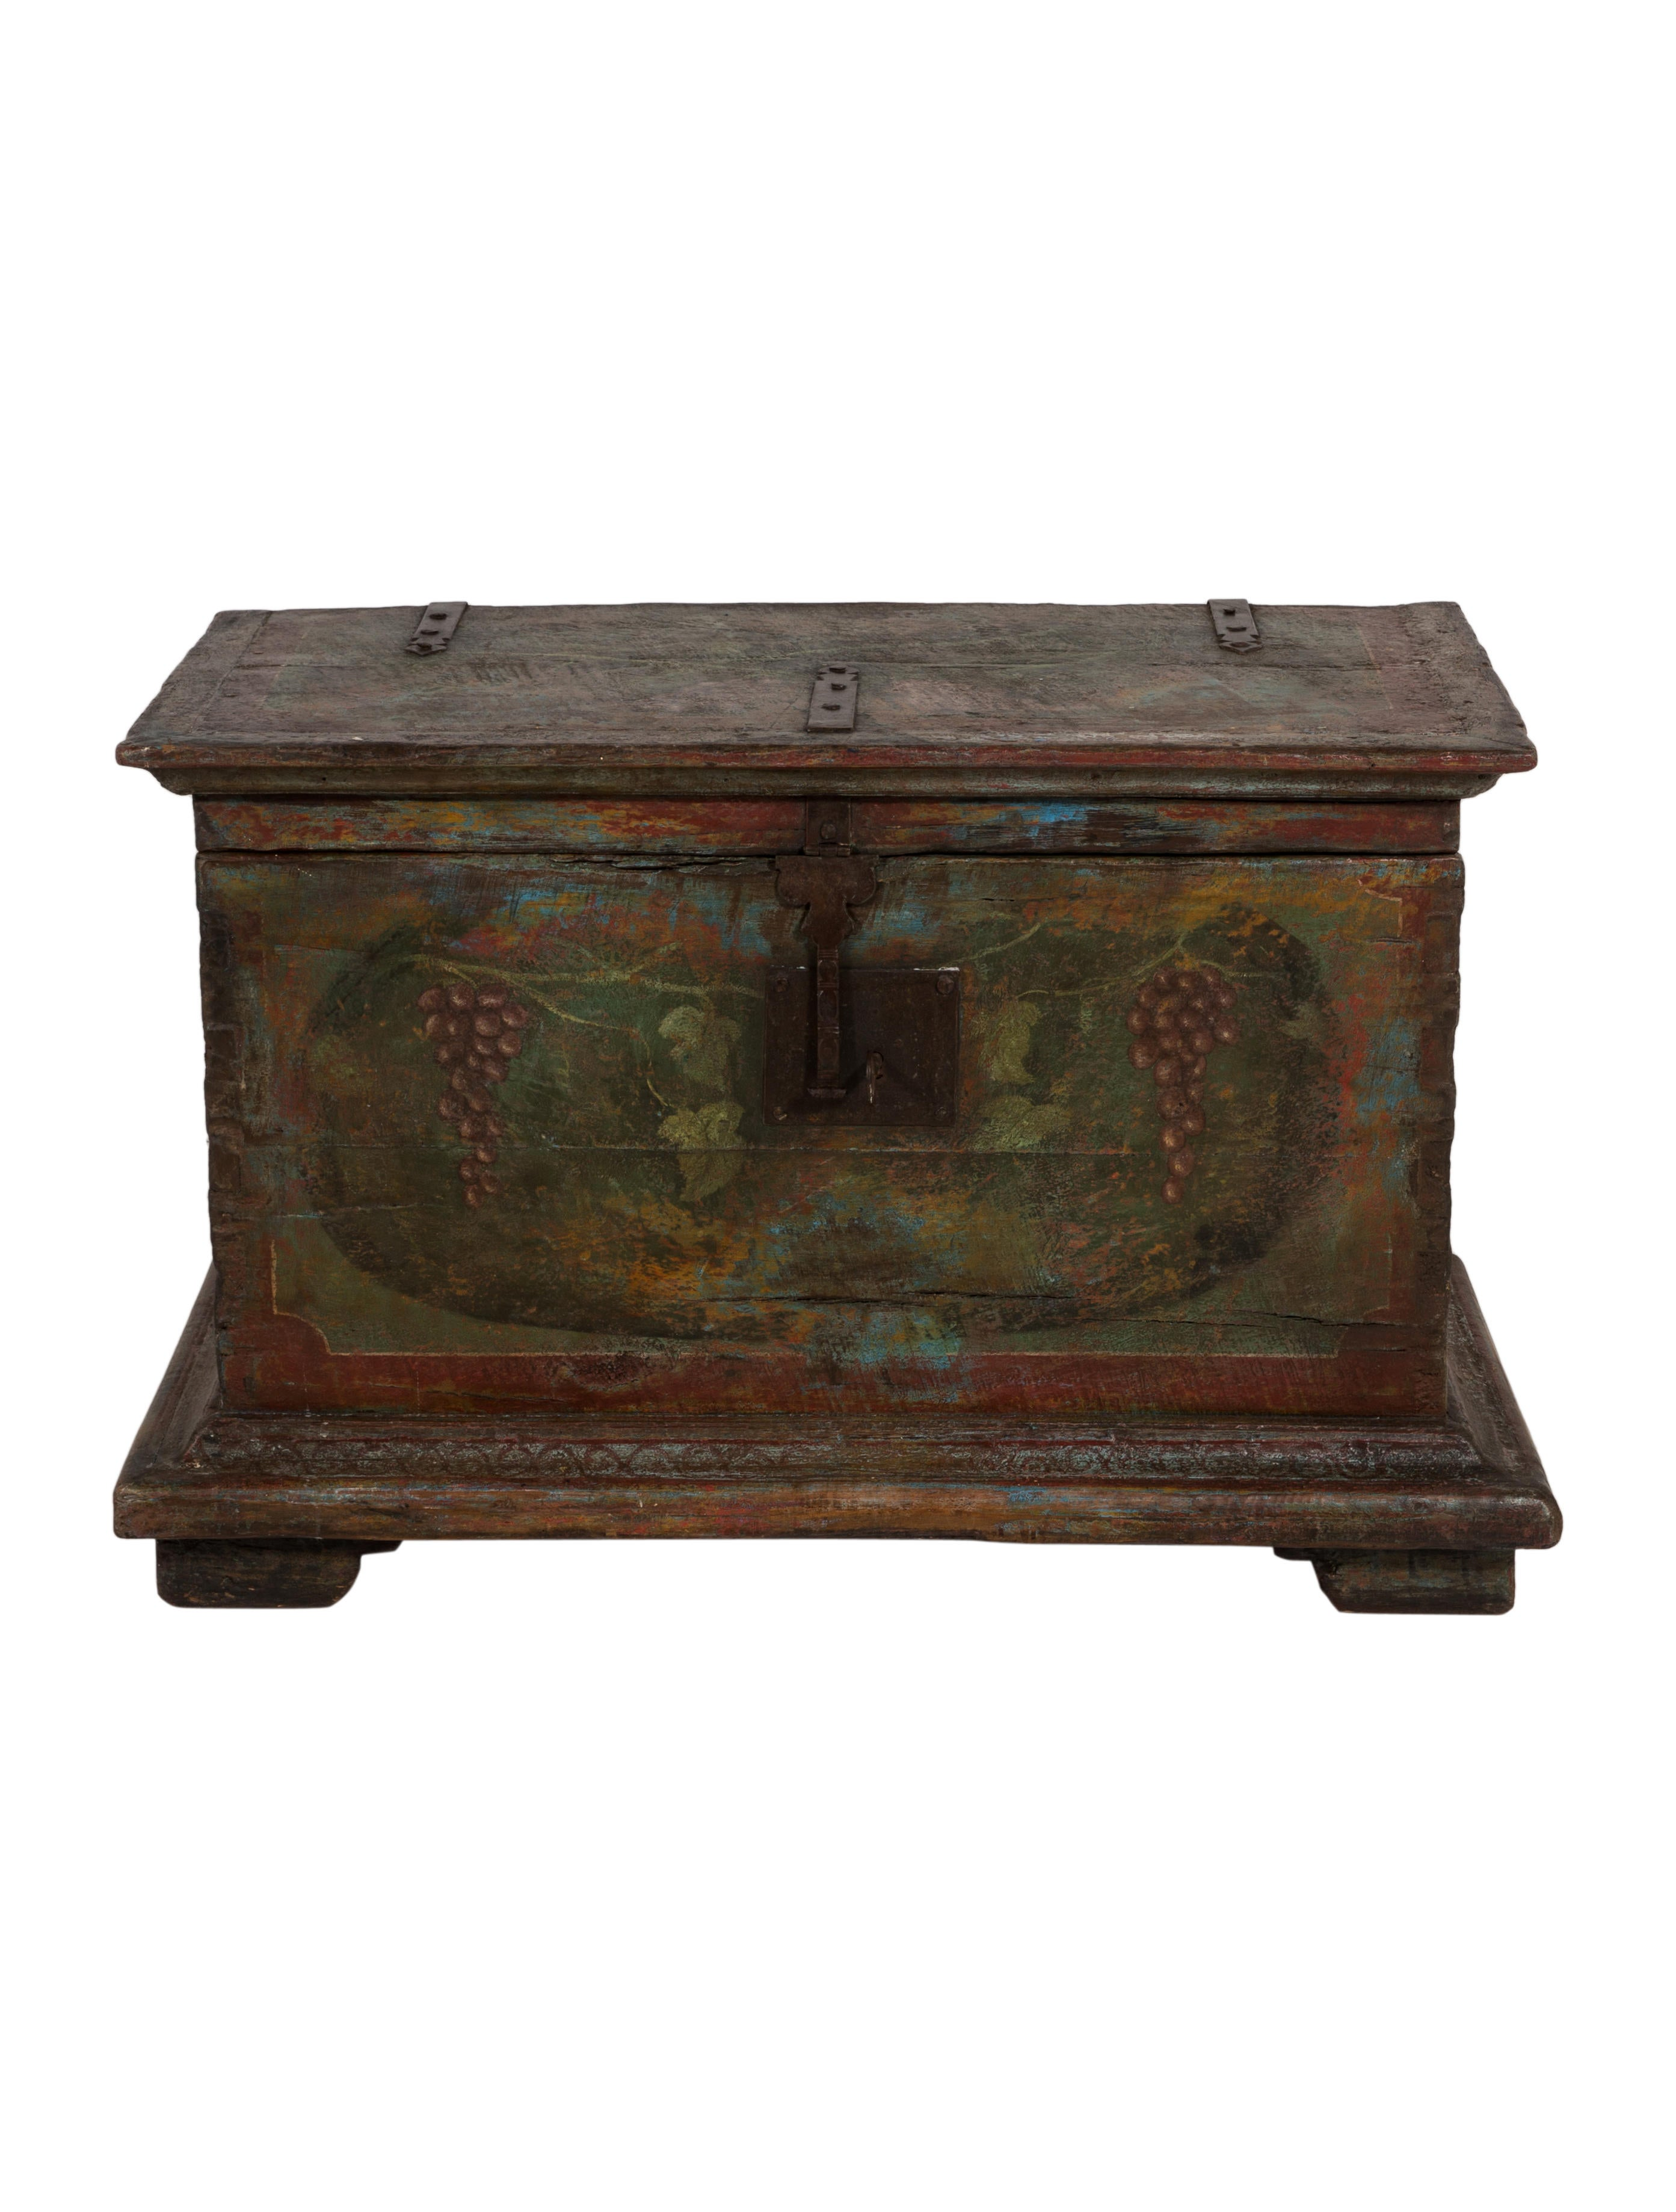 antique painted chest decor and accessories furni20600 the realreal. Black Bedroom Furniture Sets. Home Design Ideas